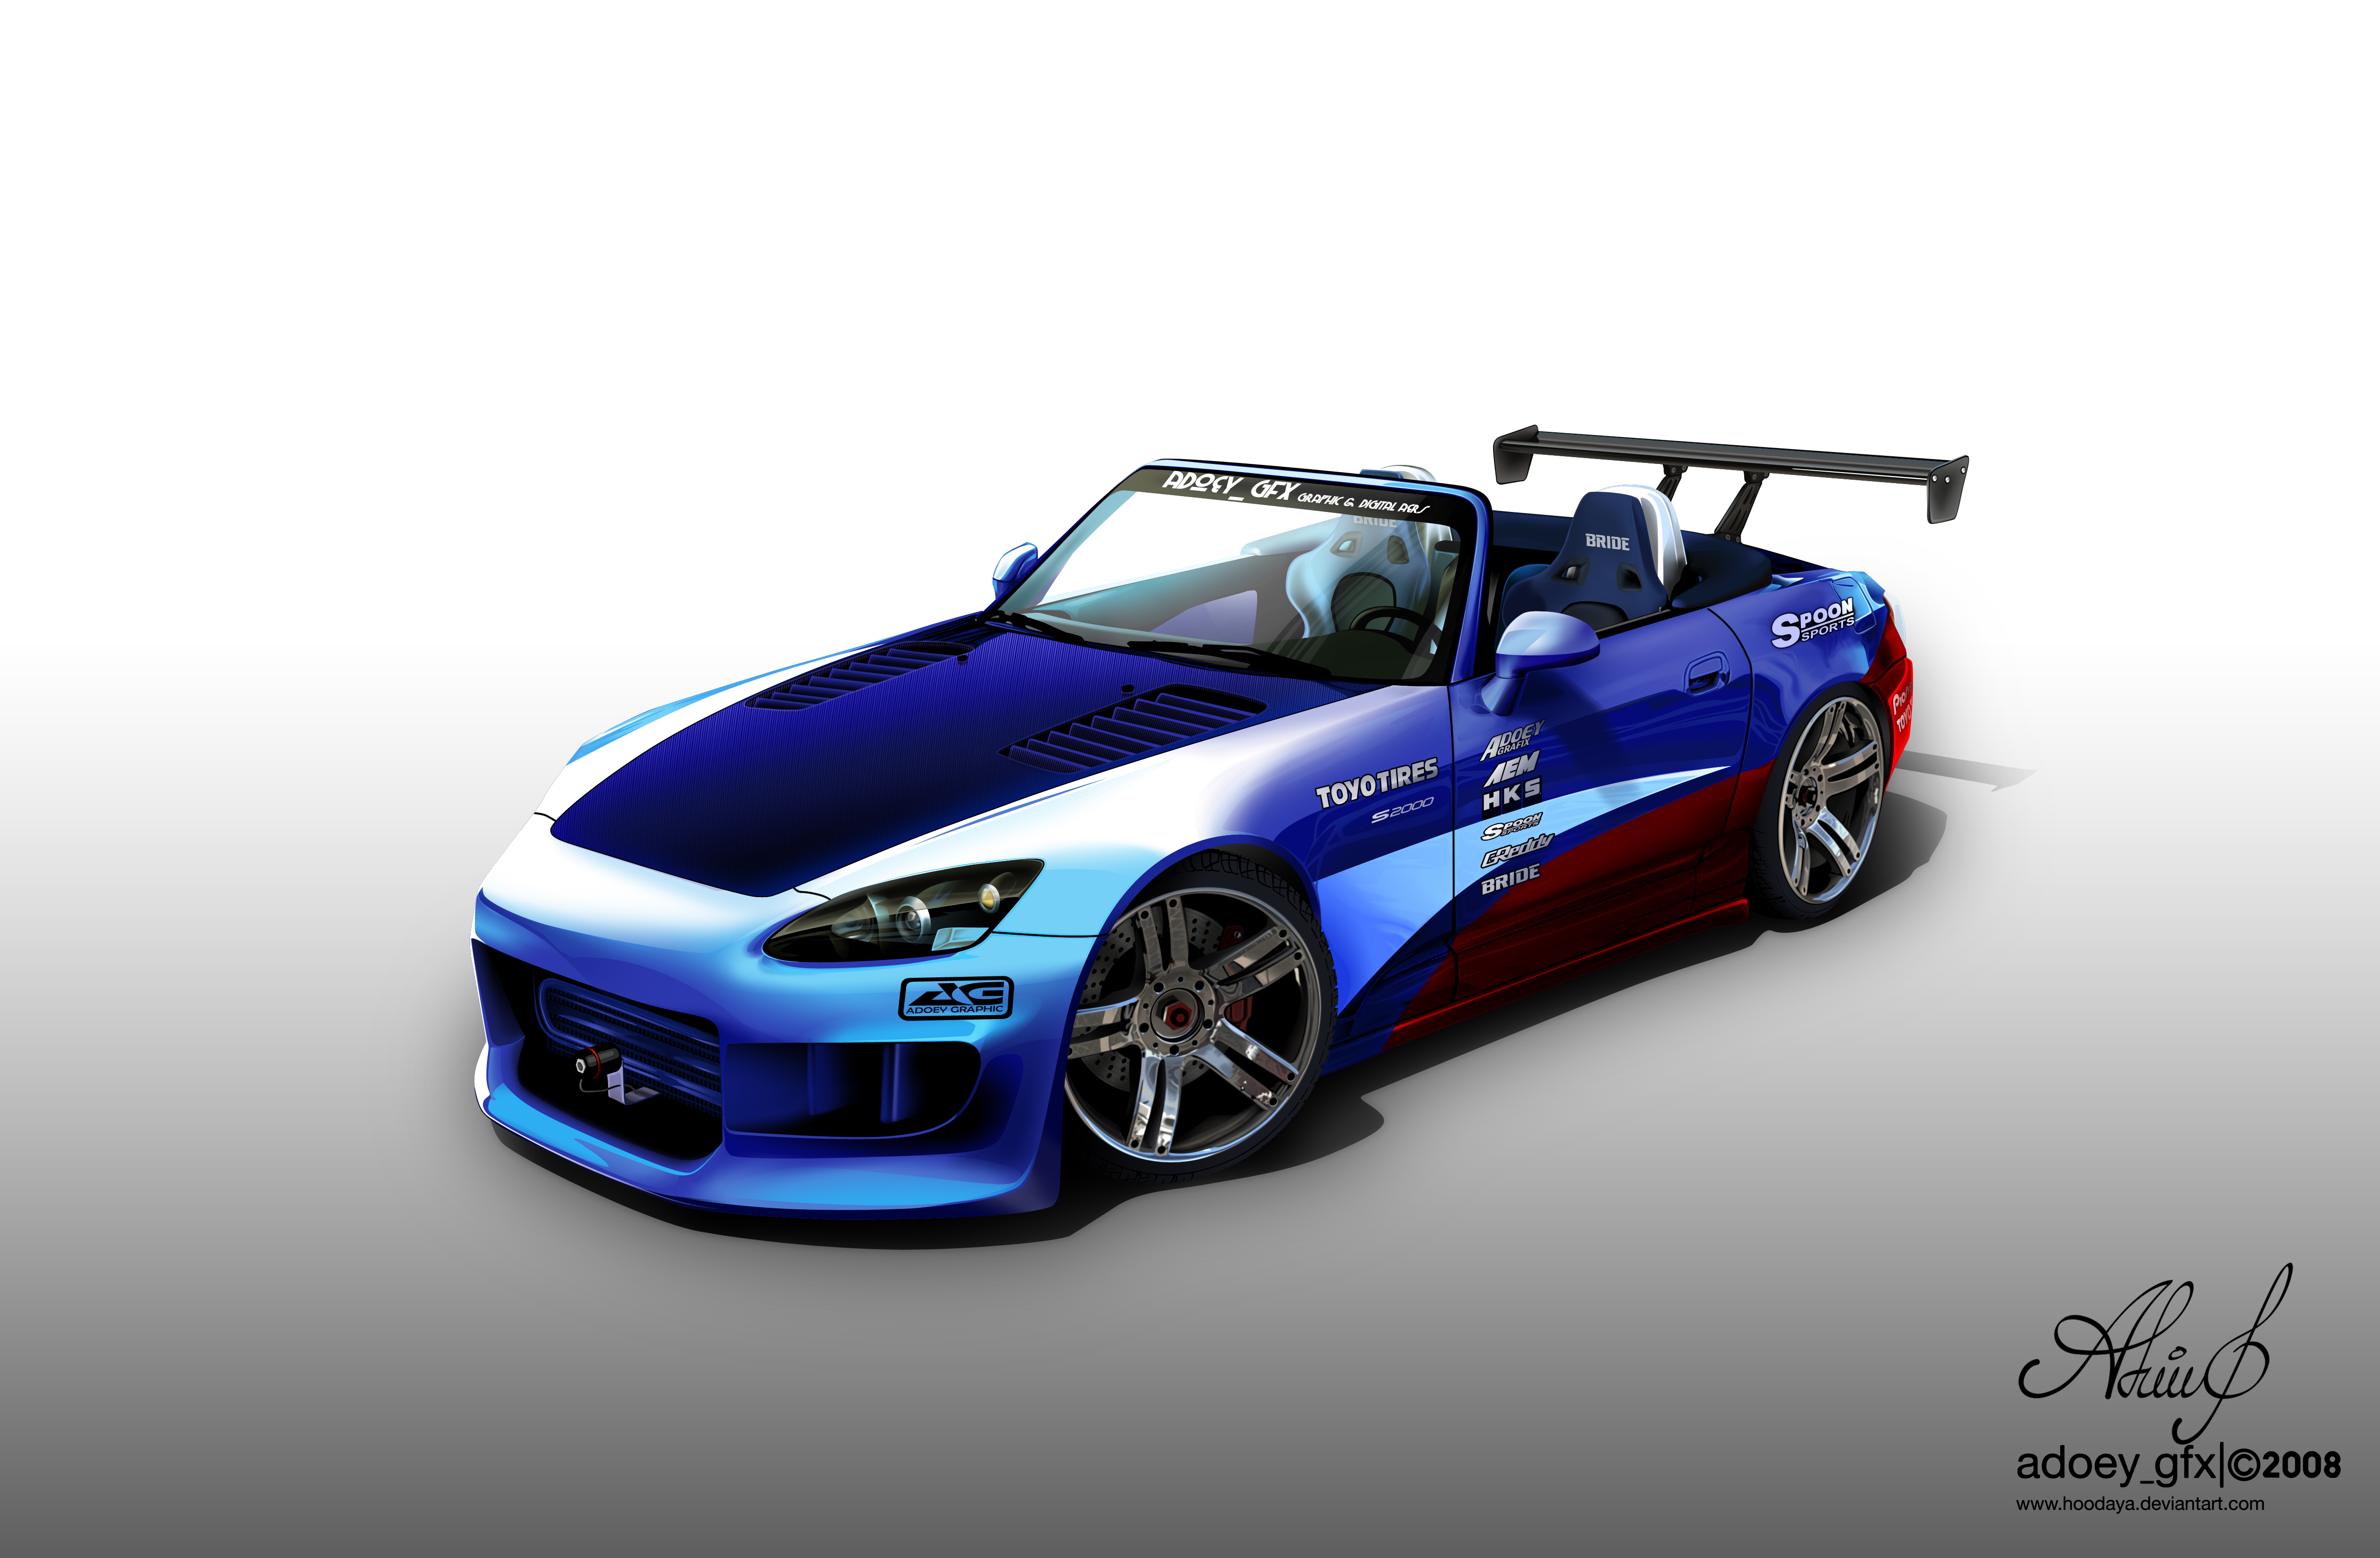 modified honda s2000 wallpapers auto gears. Black Bedroom Furniture Sets. Home Design Ideas